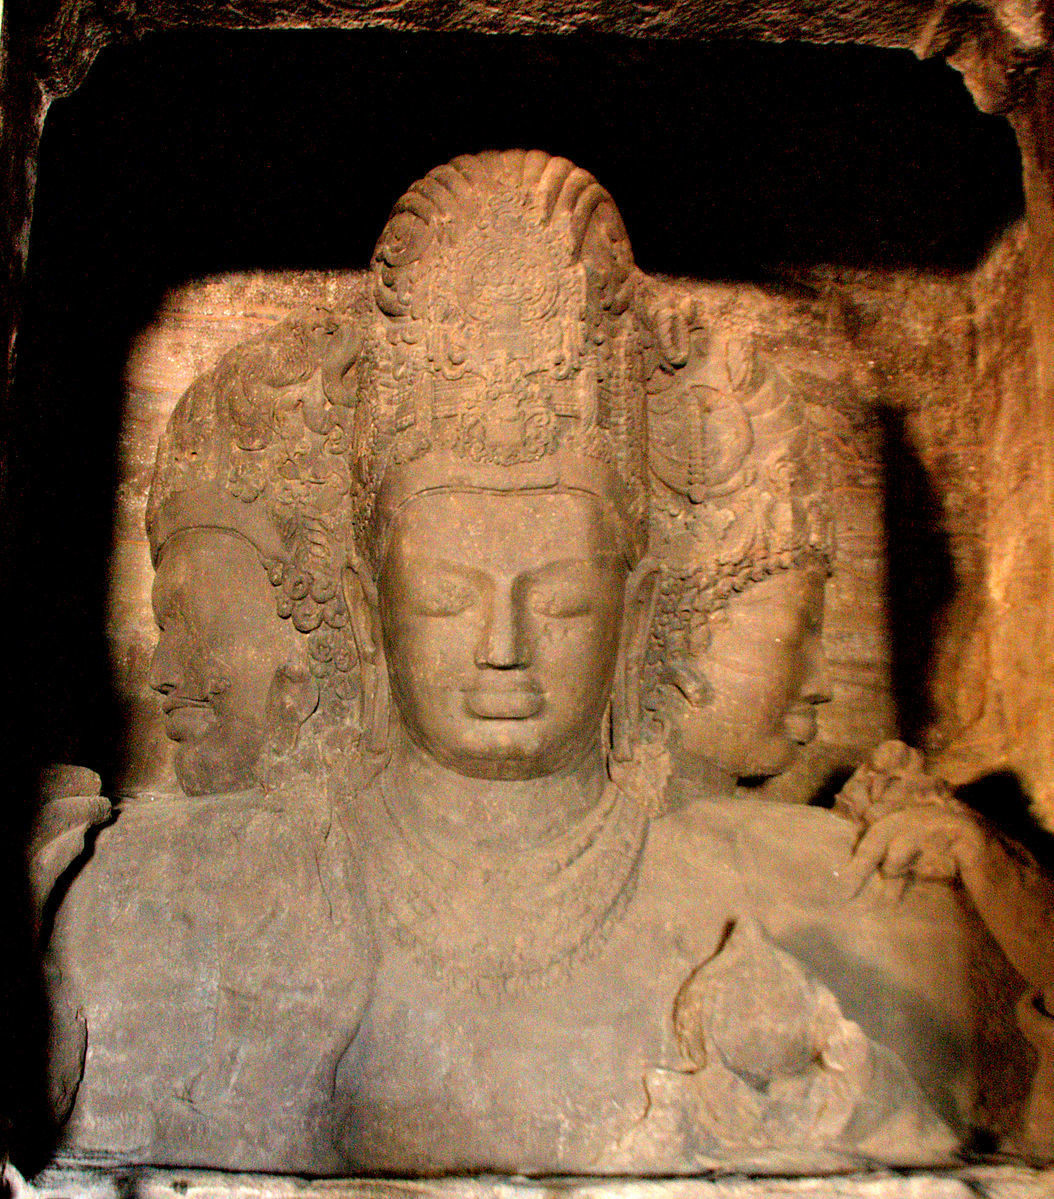 Elephanta Caves Statue